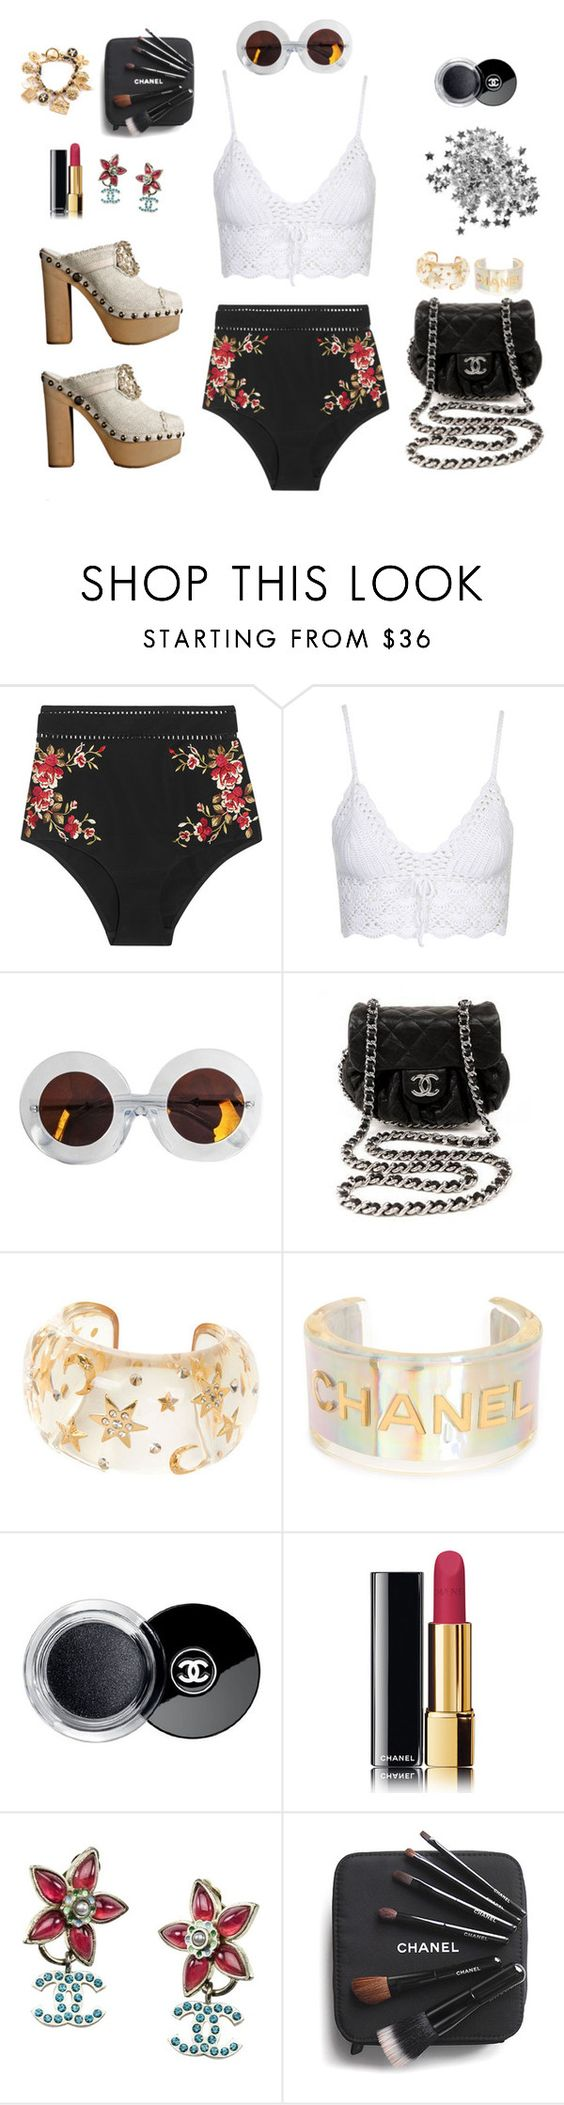 """Chanel Beach Bombshell"" by cloudwatcher101 ❤ liked on Polyvore featuring Zimmermann, Topshop, Karen Walker, Chanel and bombshell"